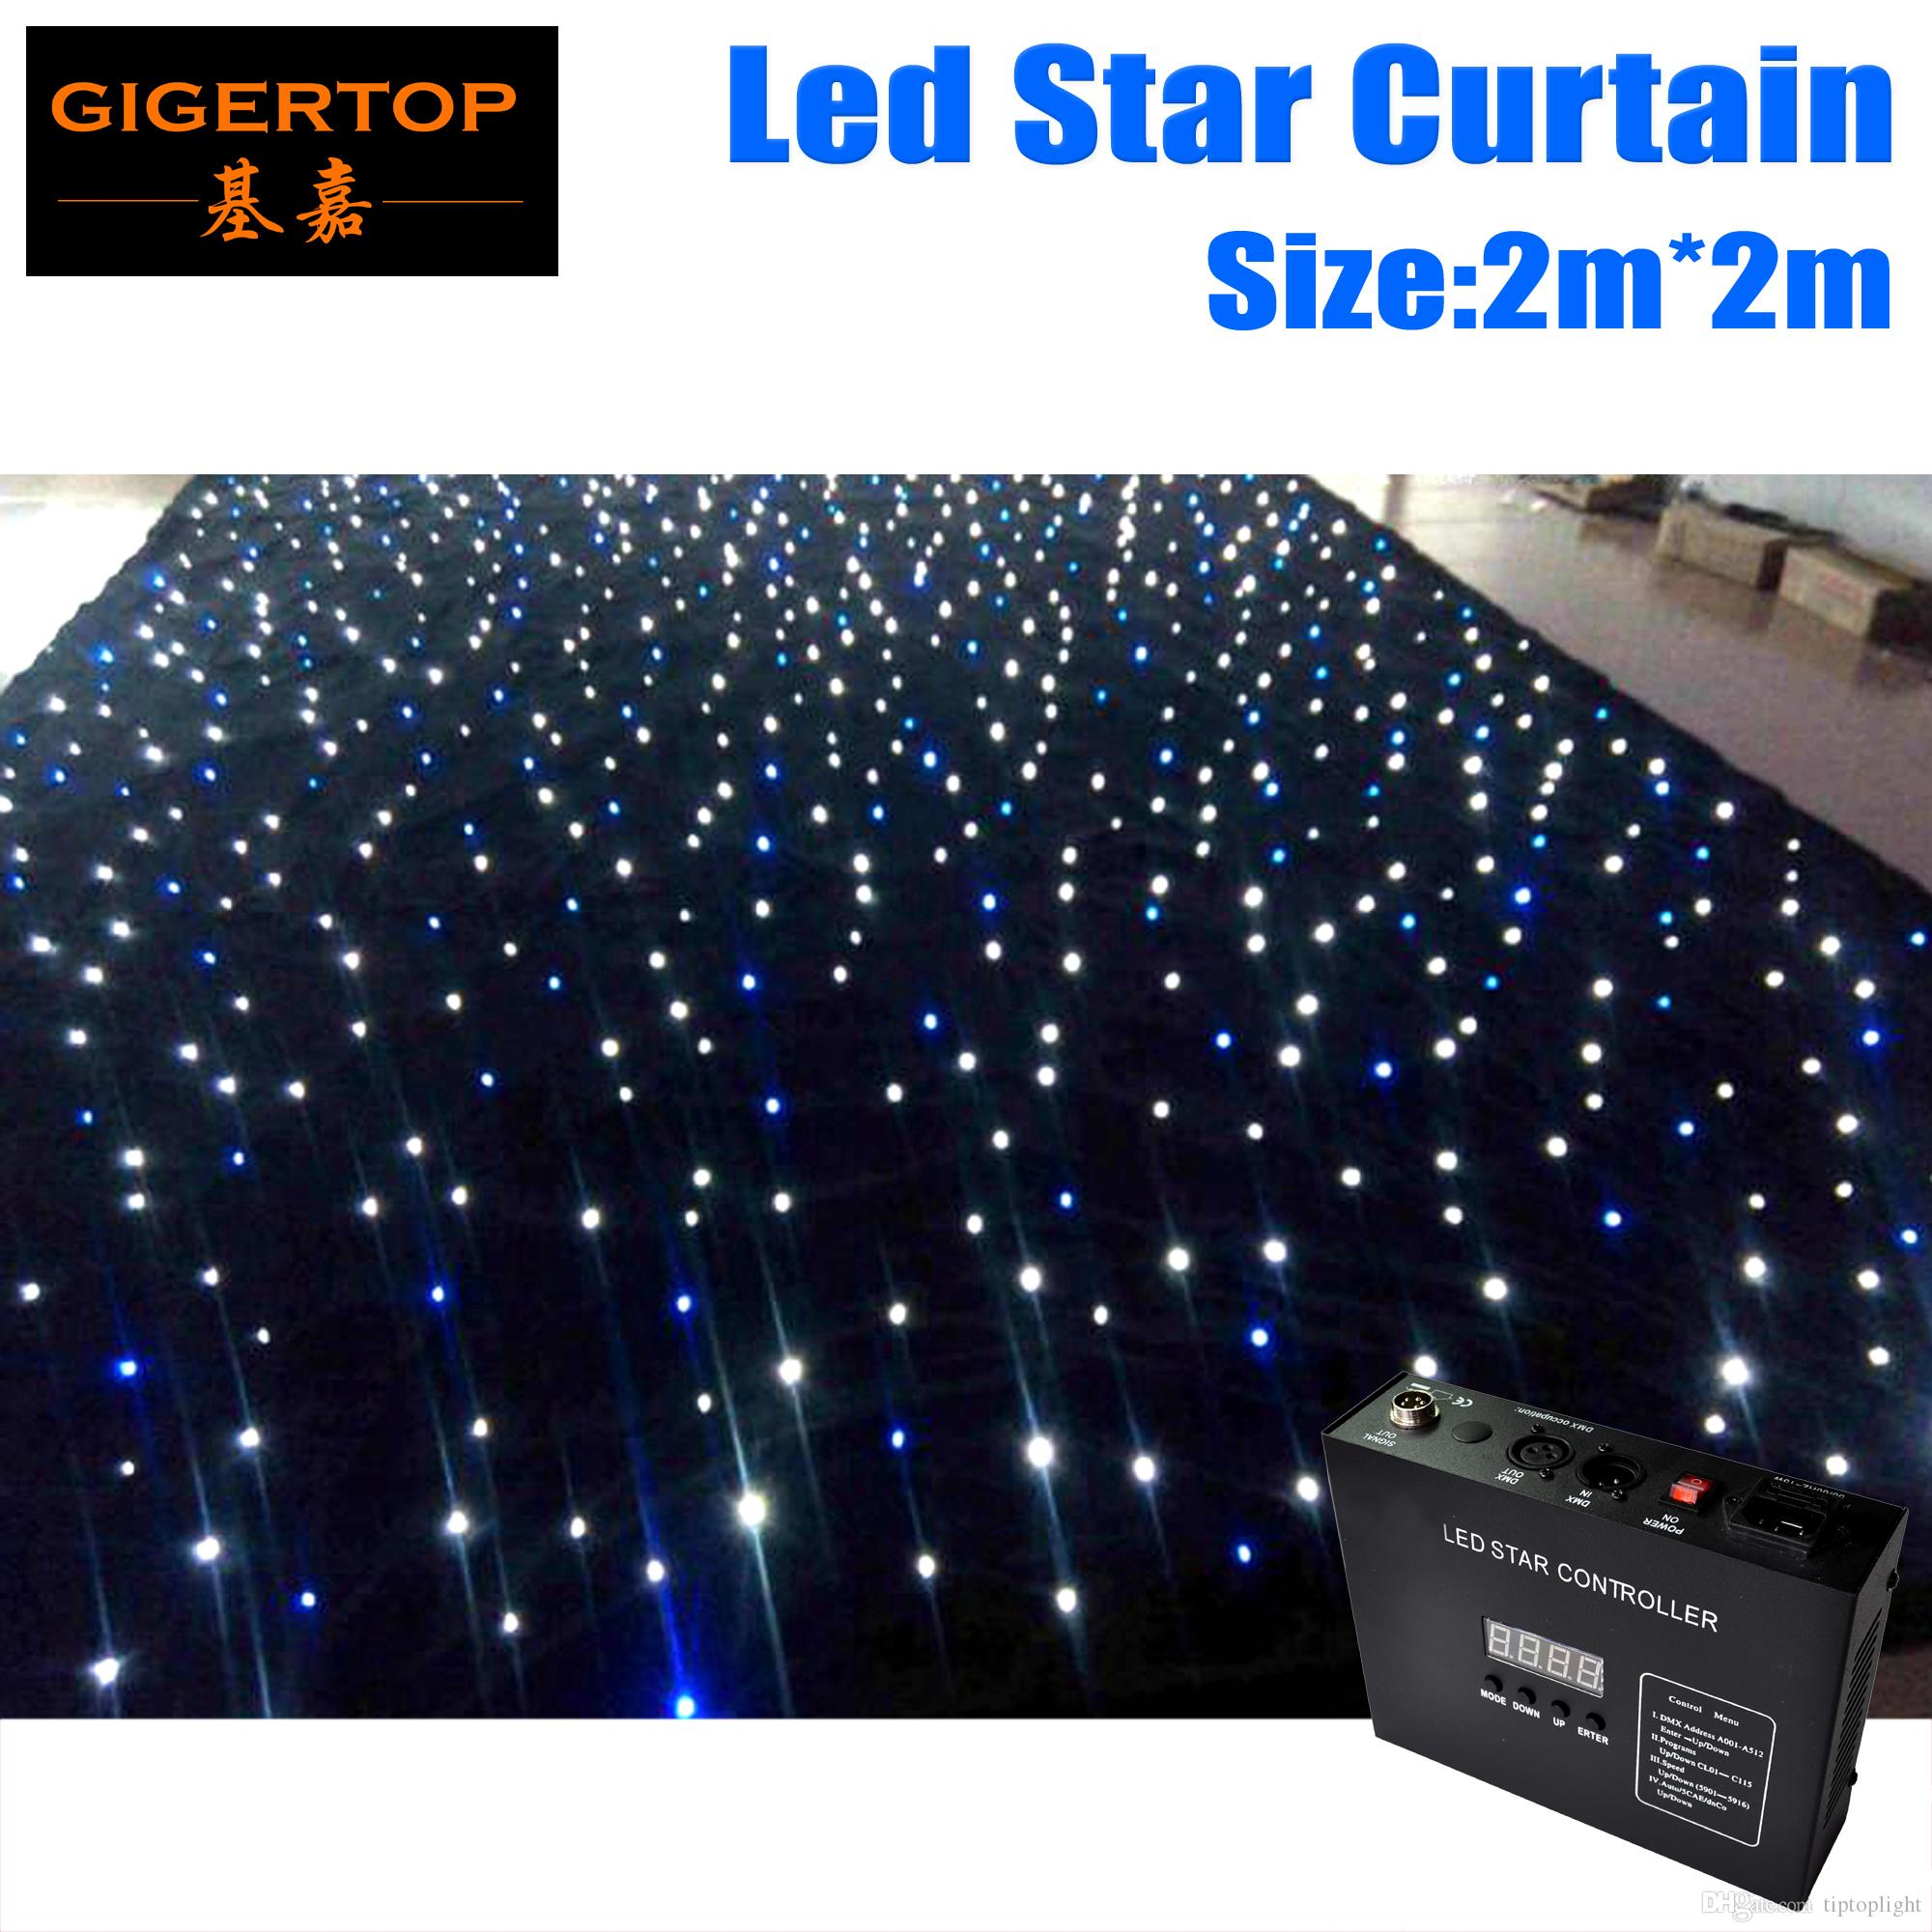 Super Deal Customize 2M*2M High Quality RGBW/RGB Color Curtain LED Star Cloth with Controller 90V-240V Light Curtain CE ROHS